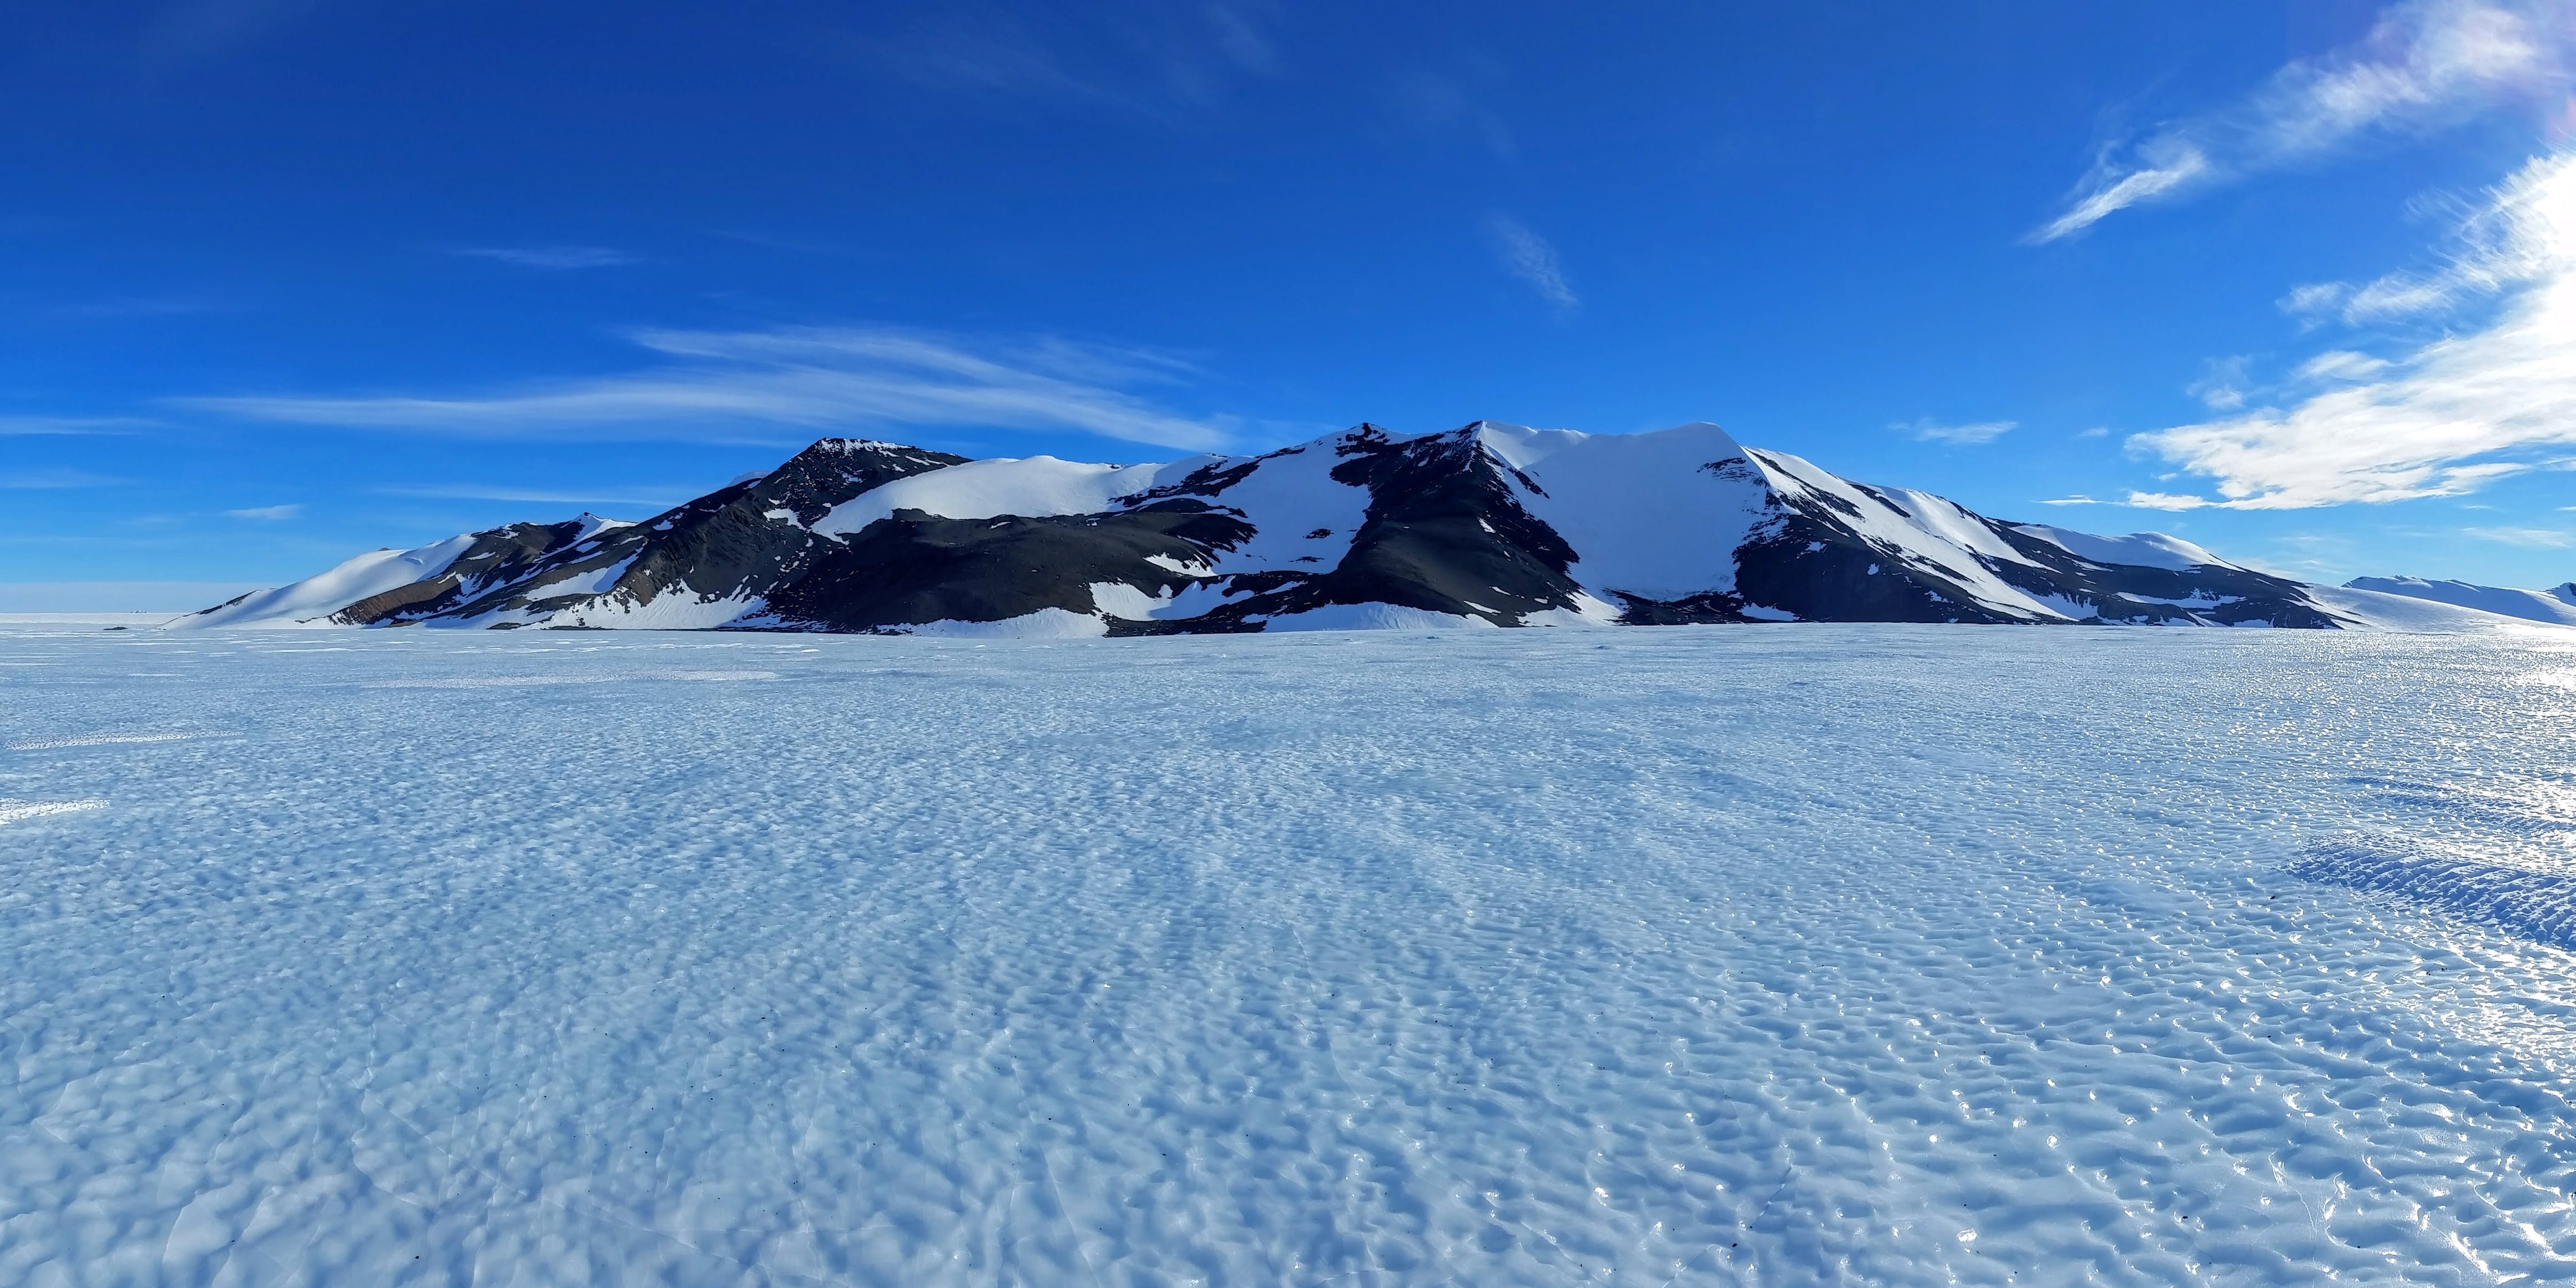 Ancient Antarctic ice melt caused extreme sea level rise 129,000 years ago – and it could happen again - The Conversation UK